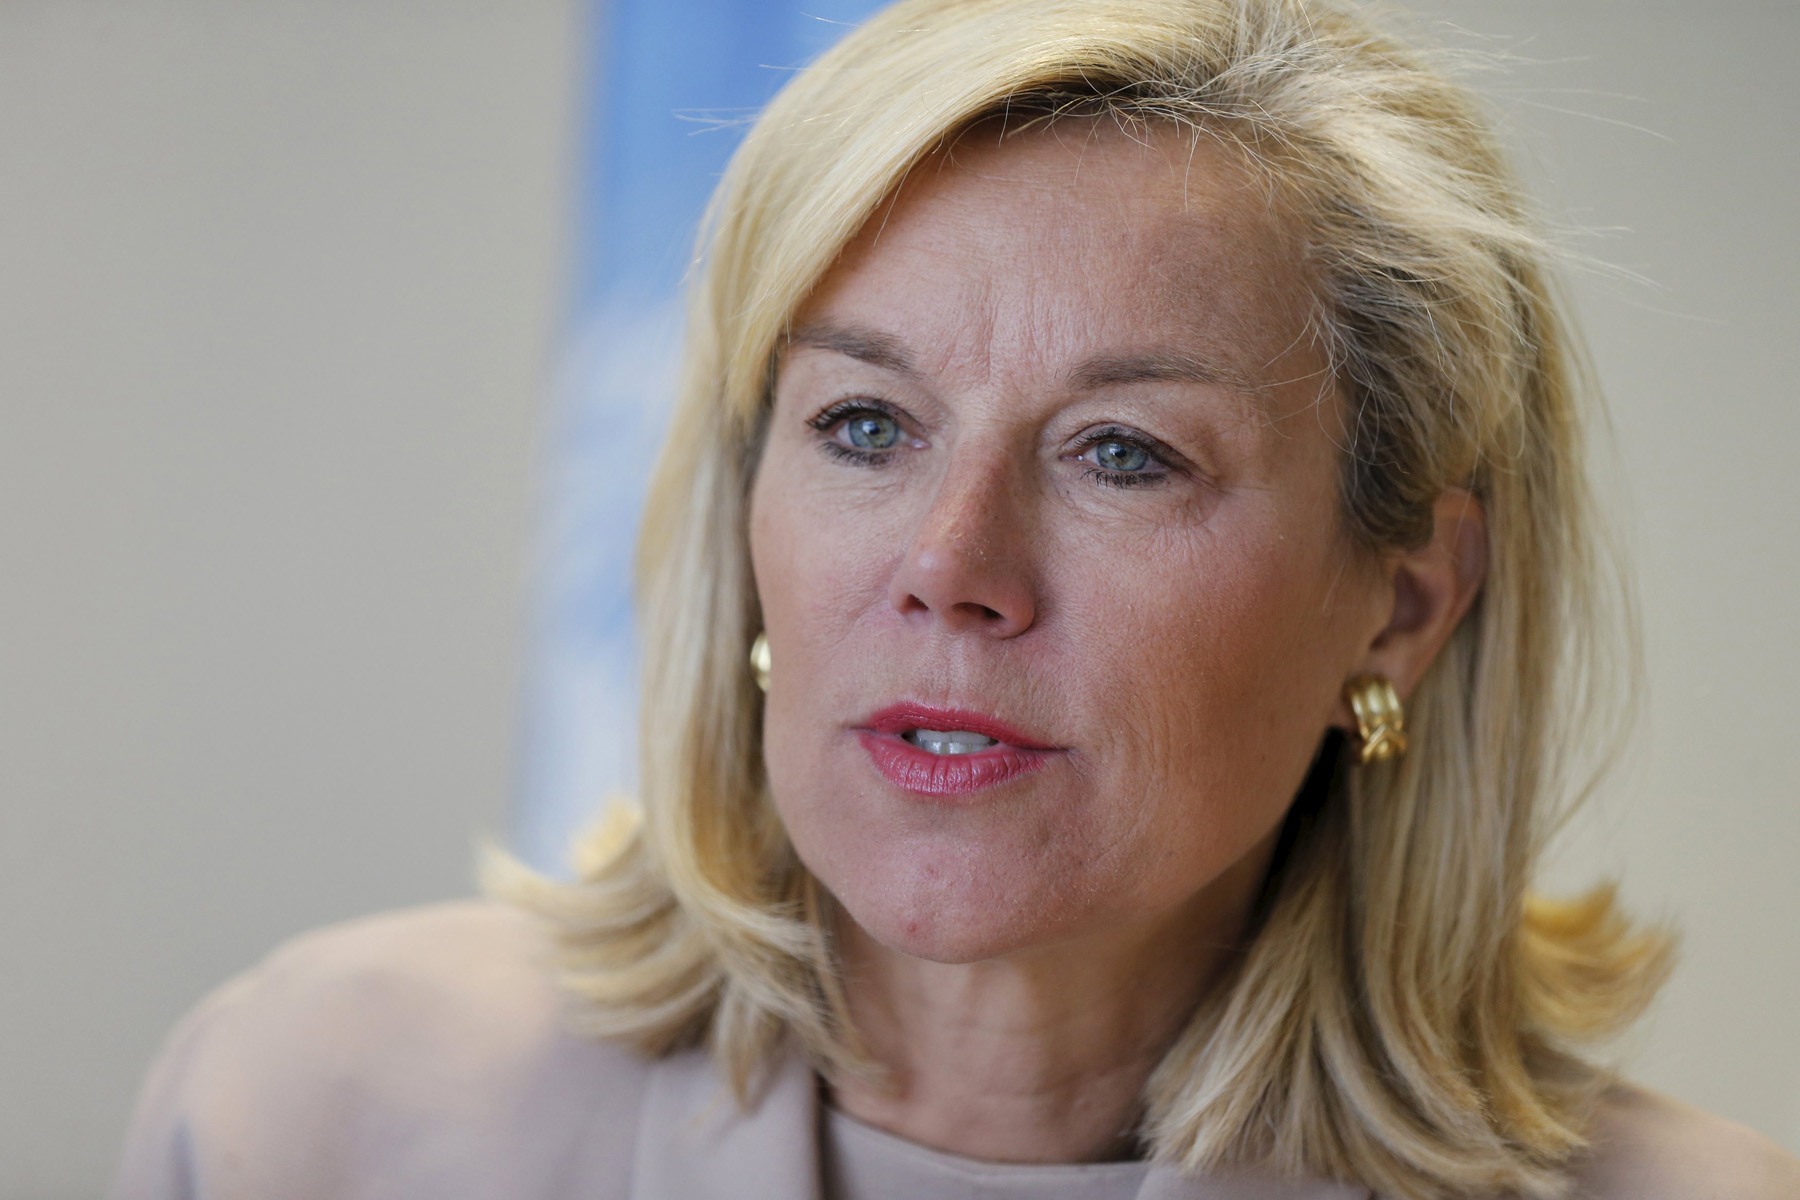 Dutch Minister for Foreign Trade and Development Cooperation Sigrid Kaag during an interview in Beirut. (Reuters)